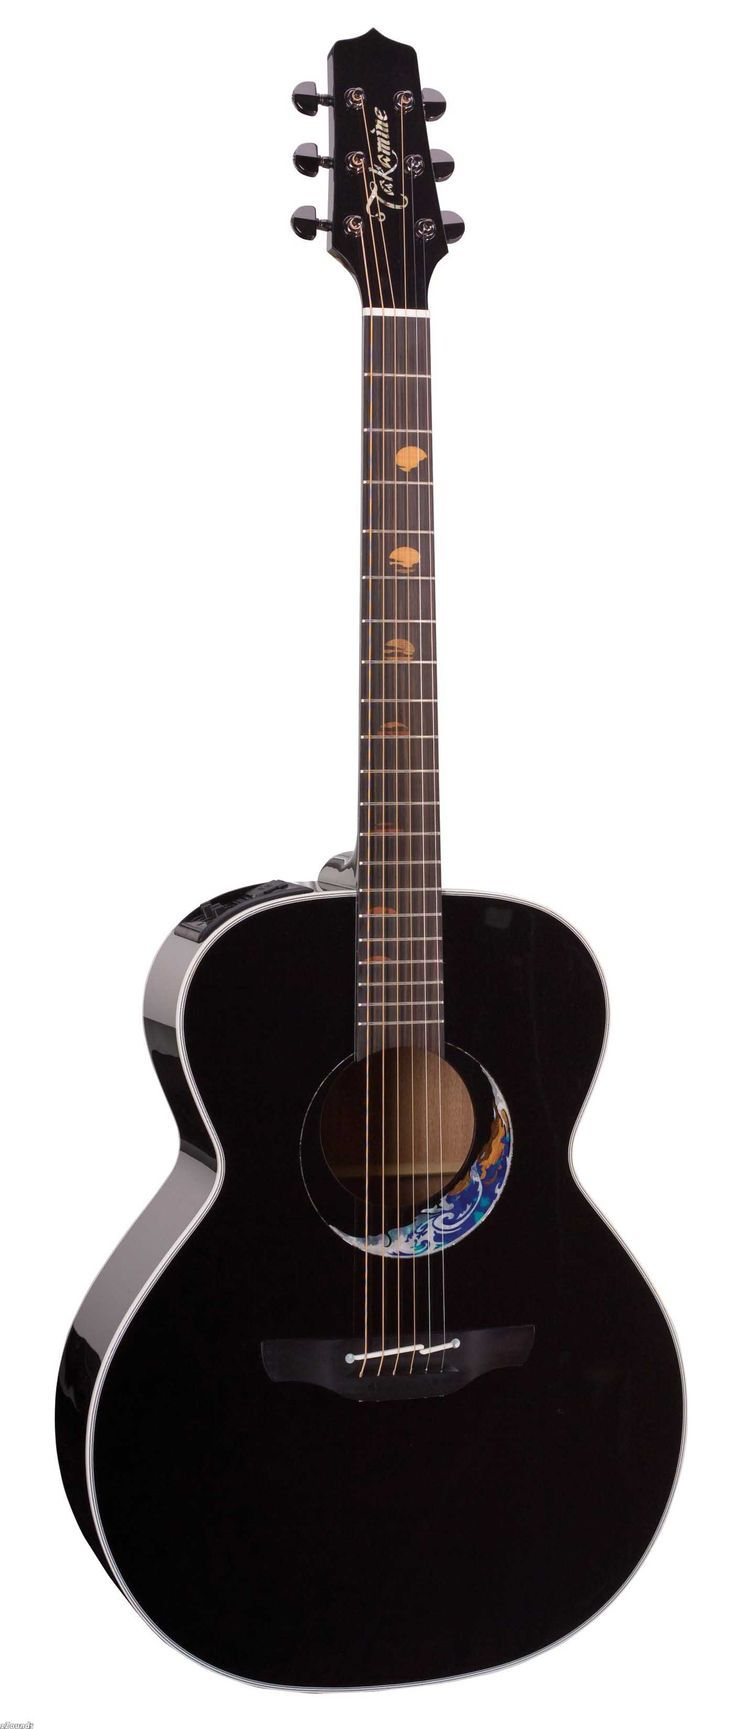 guitars | Takamine Guitars is a Japanese musical instruments company. It is ...